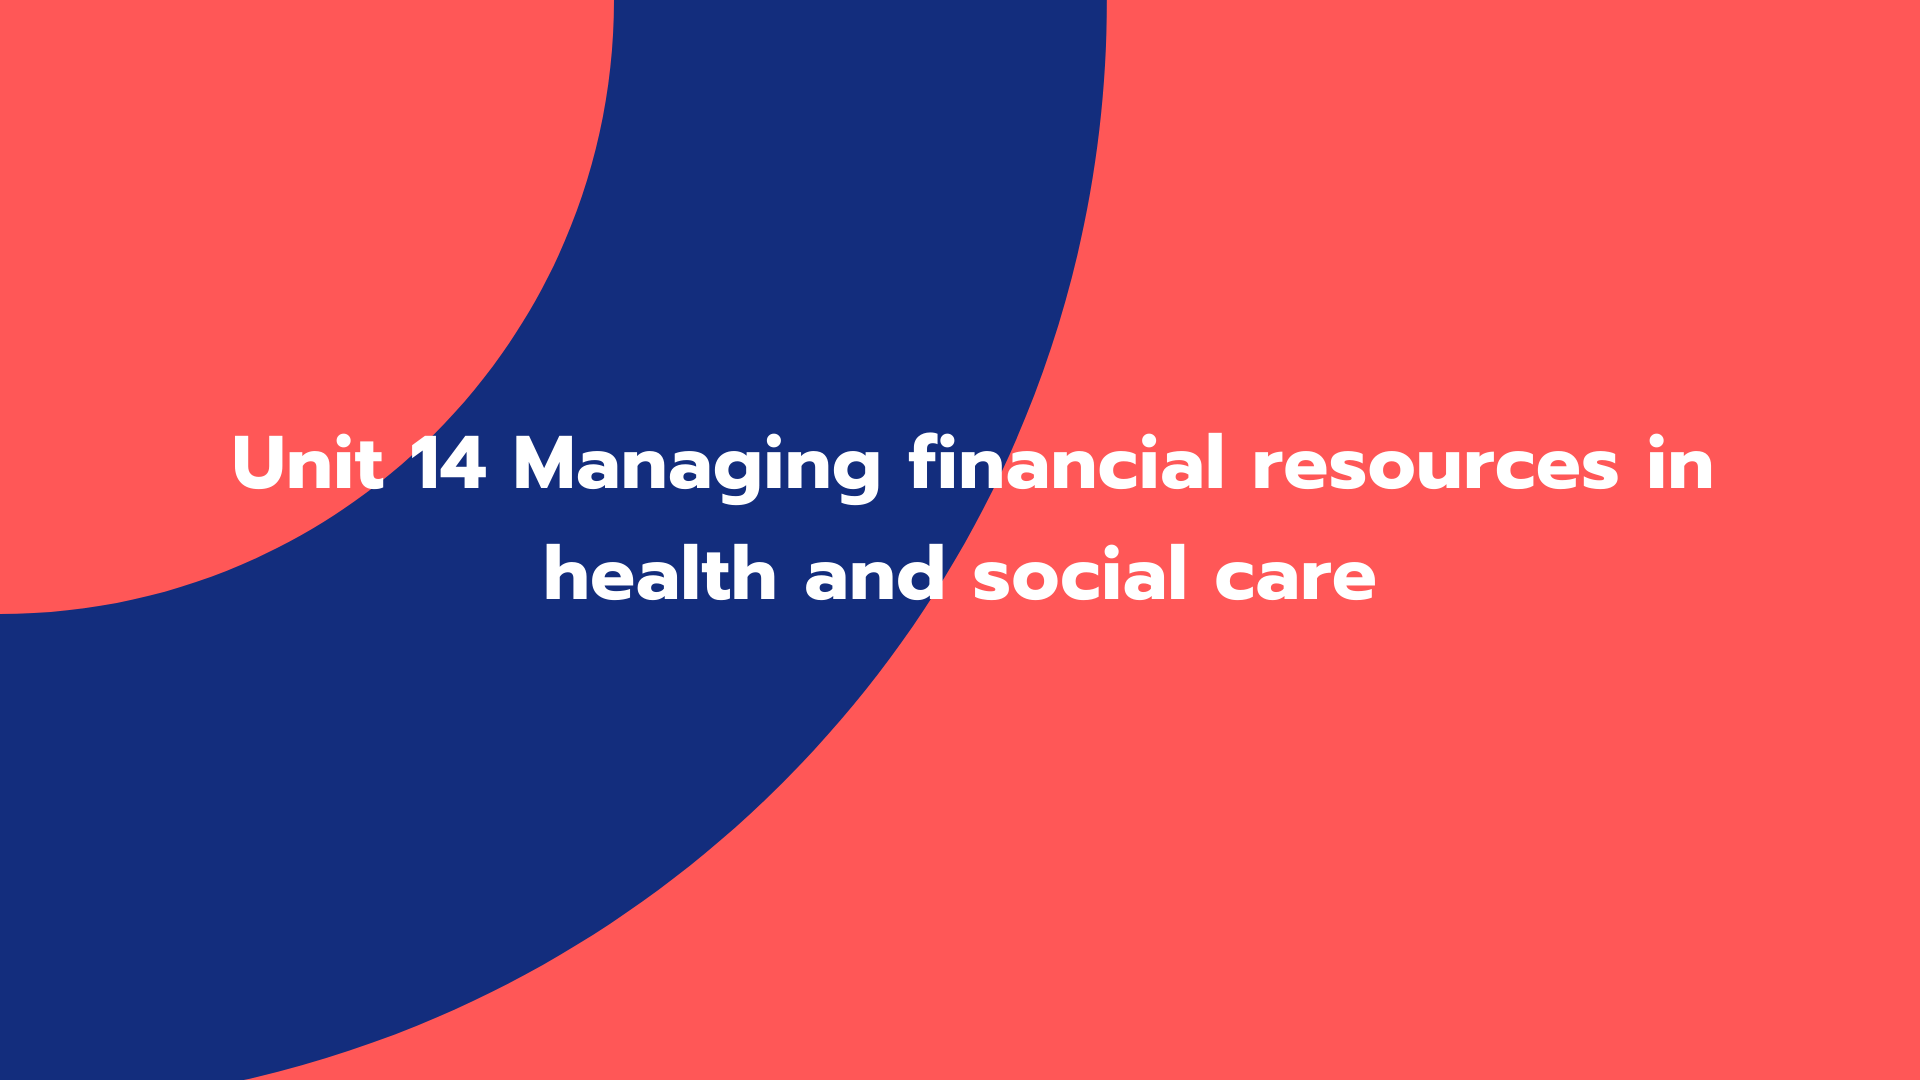 Unit 14 Managing financial resources in health and social care